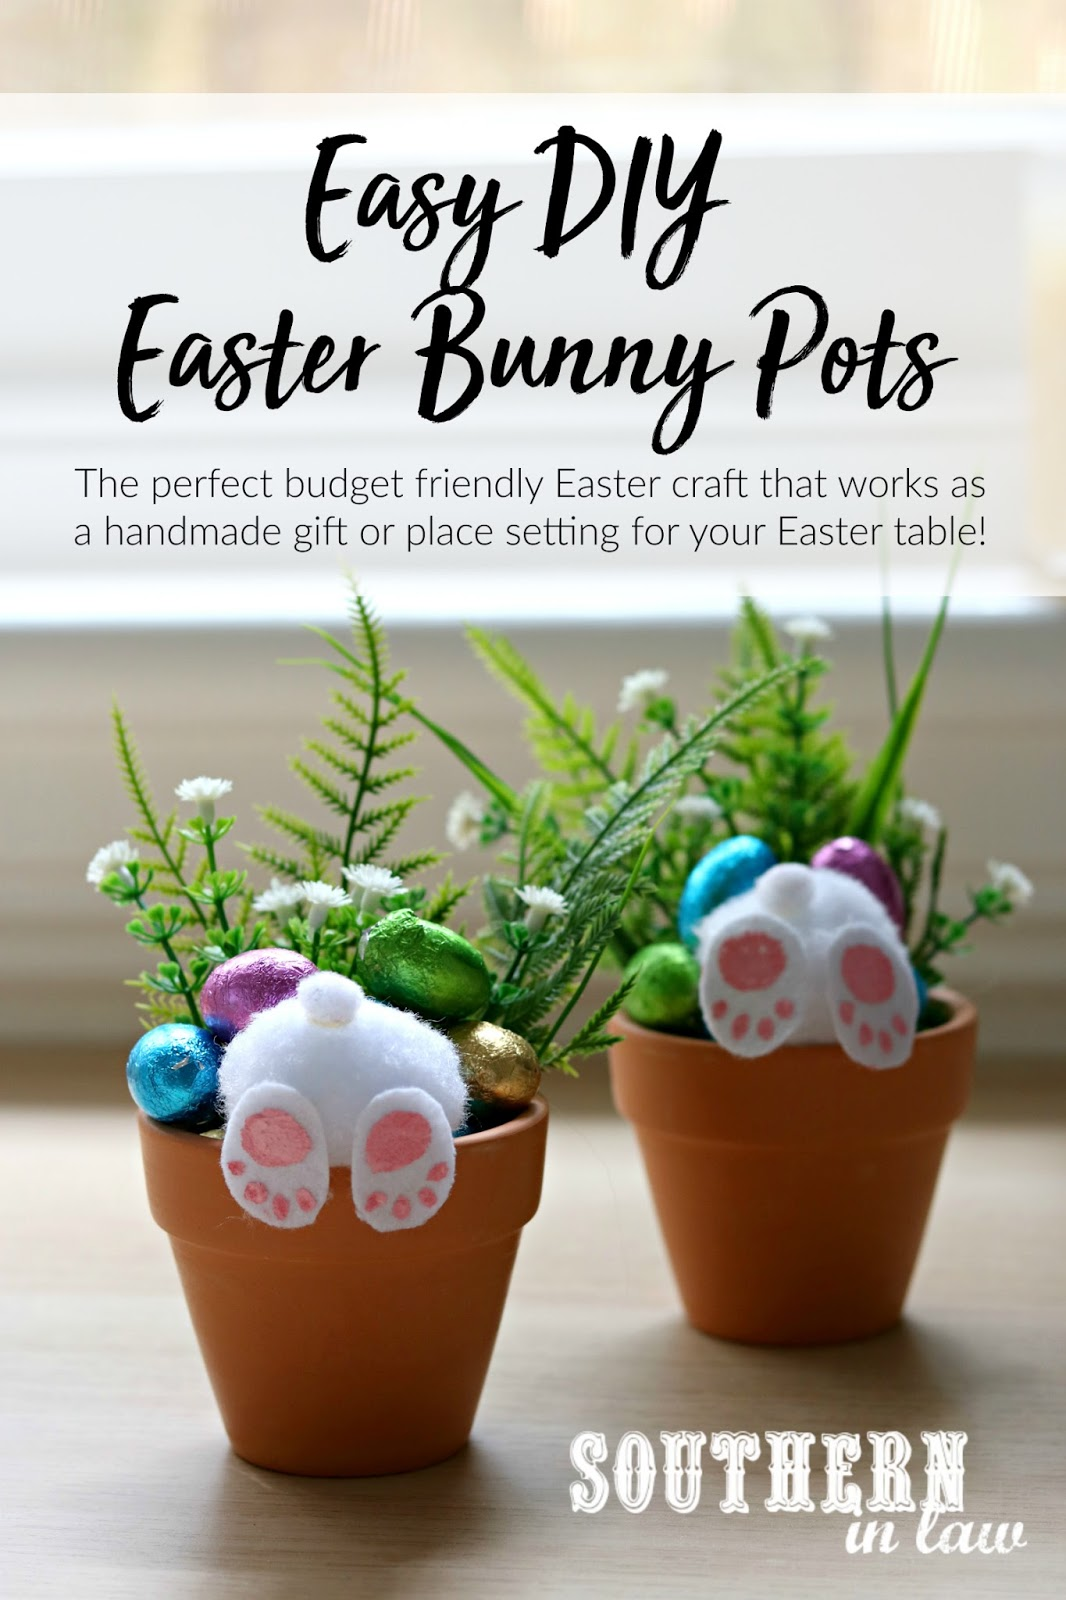 Southern in law how to make your own curious easter bunny pots an easy diy curious easter bunny pots handmade easter gift ideas place settings placecards negle Images